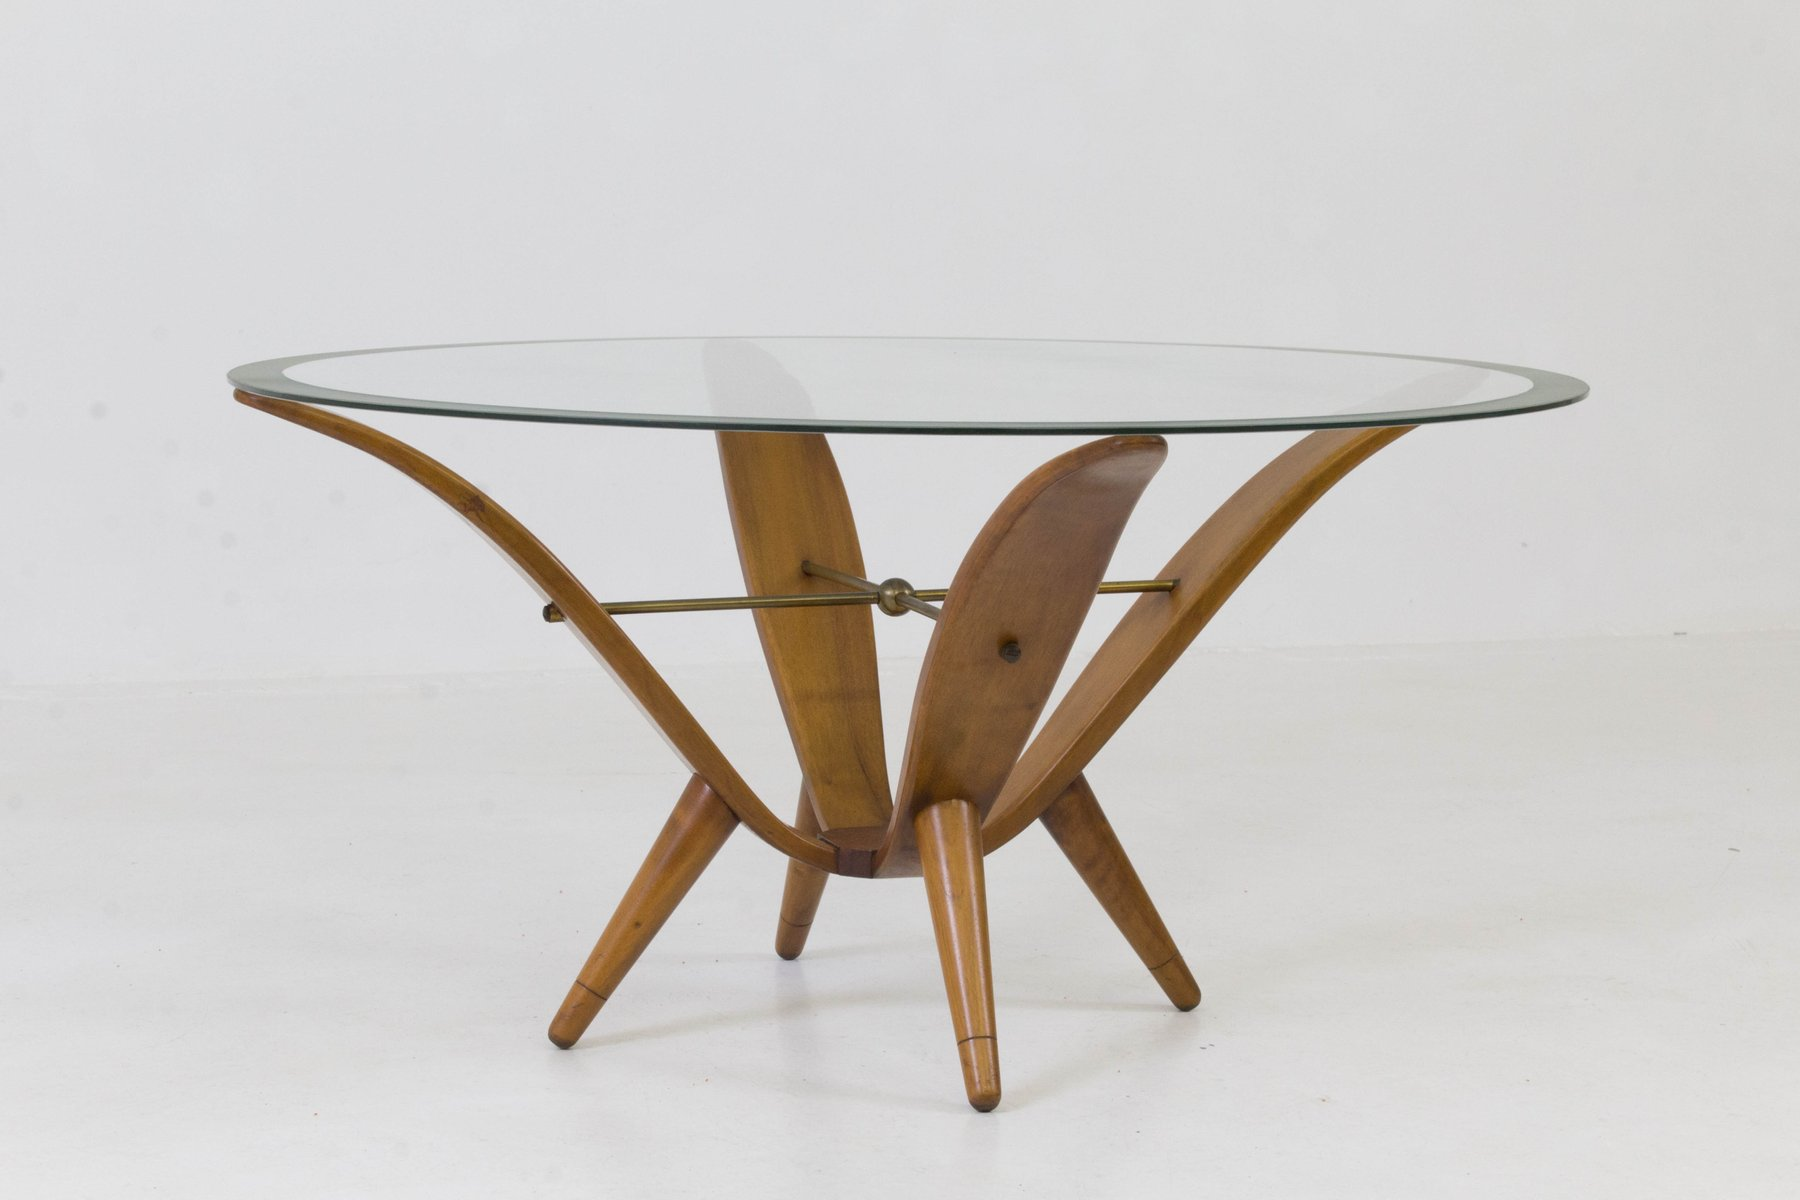 Italian Mid Century Modern Coffee Table 1950s for sale at Pamono